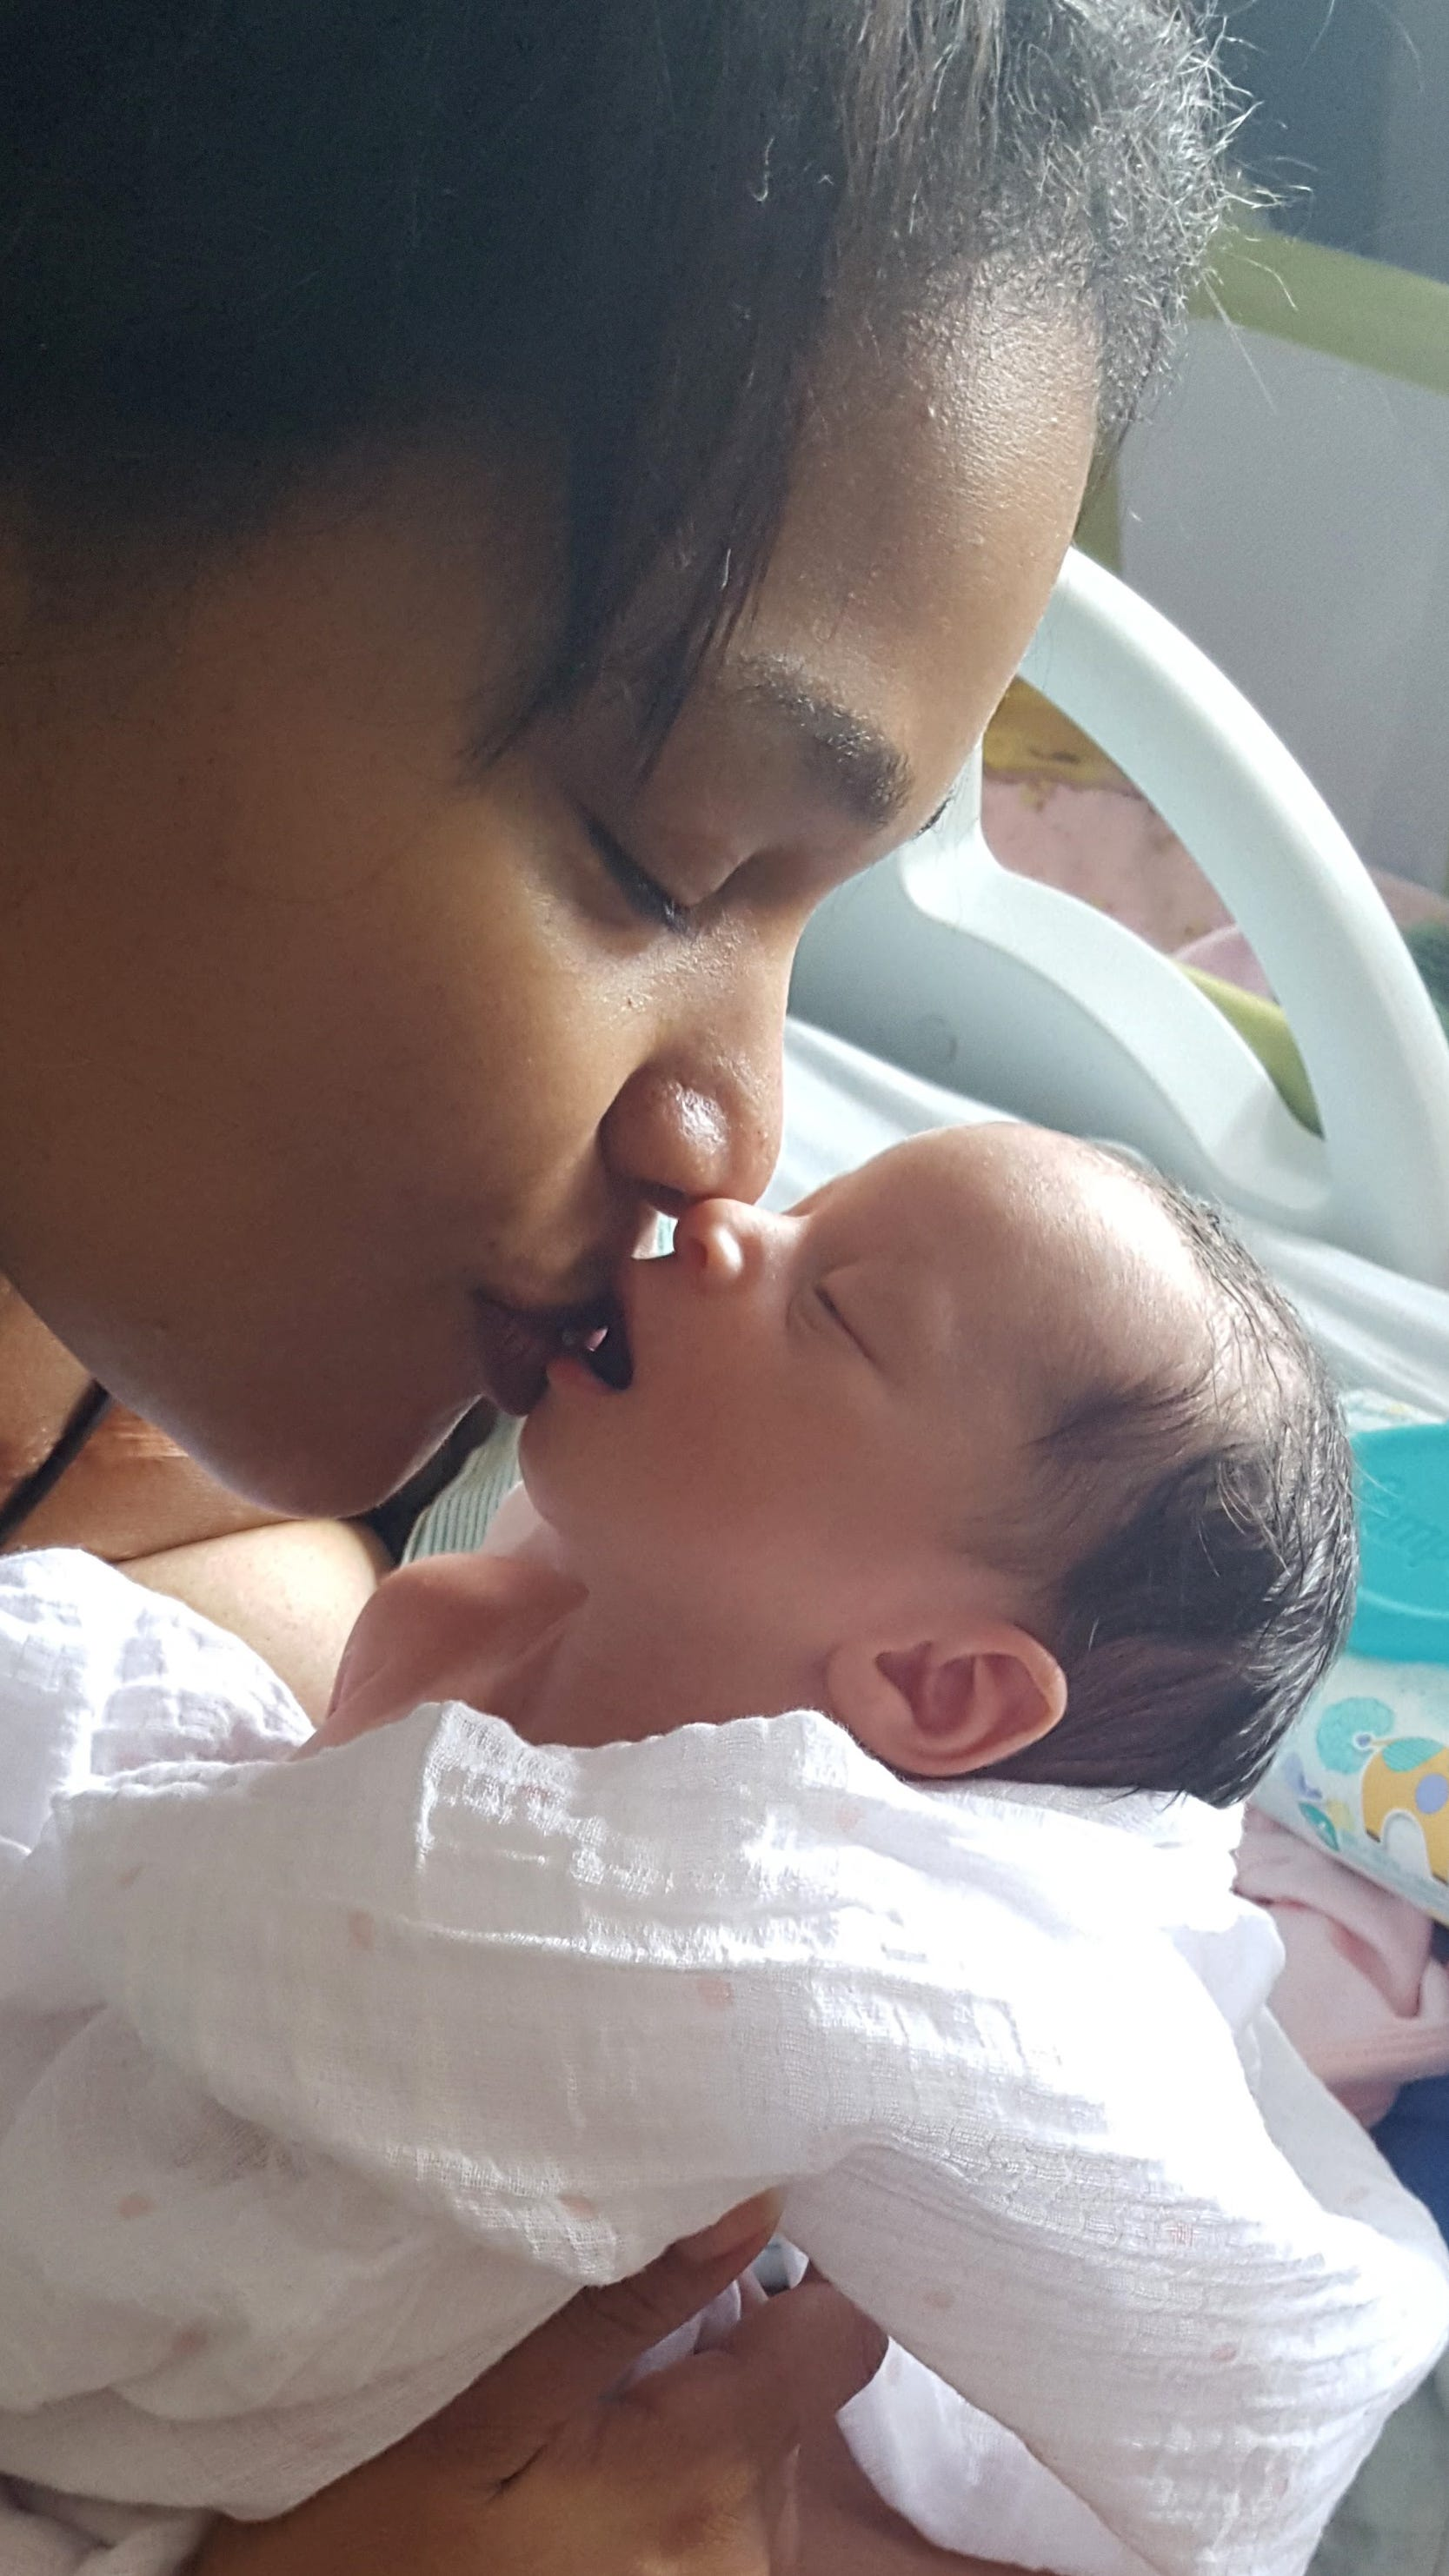 ZaKiya Bell-Rogers of Asheville, North Carolina, needed an emergency hysterectomy to stop the bleeding after she gave birth in 2015.